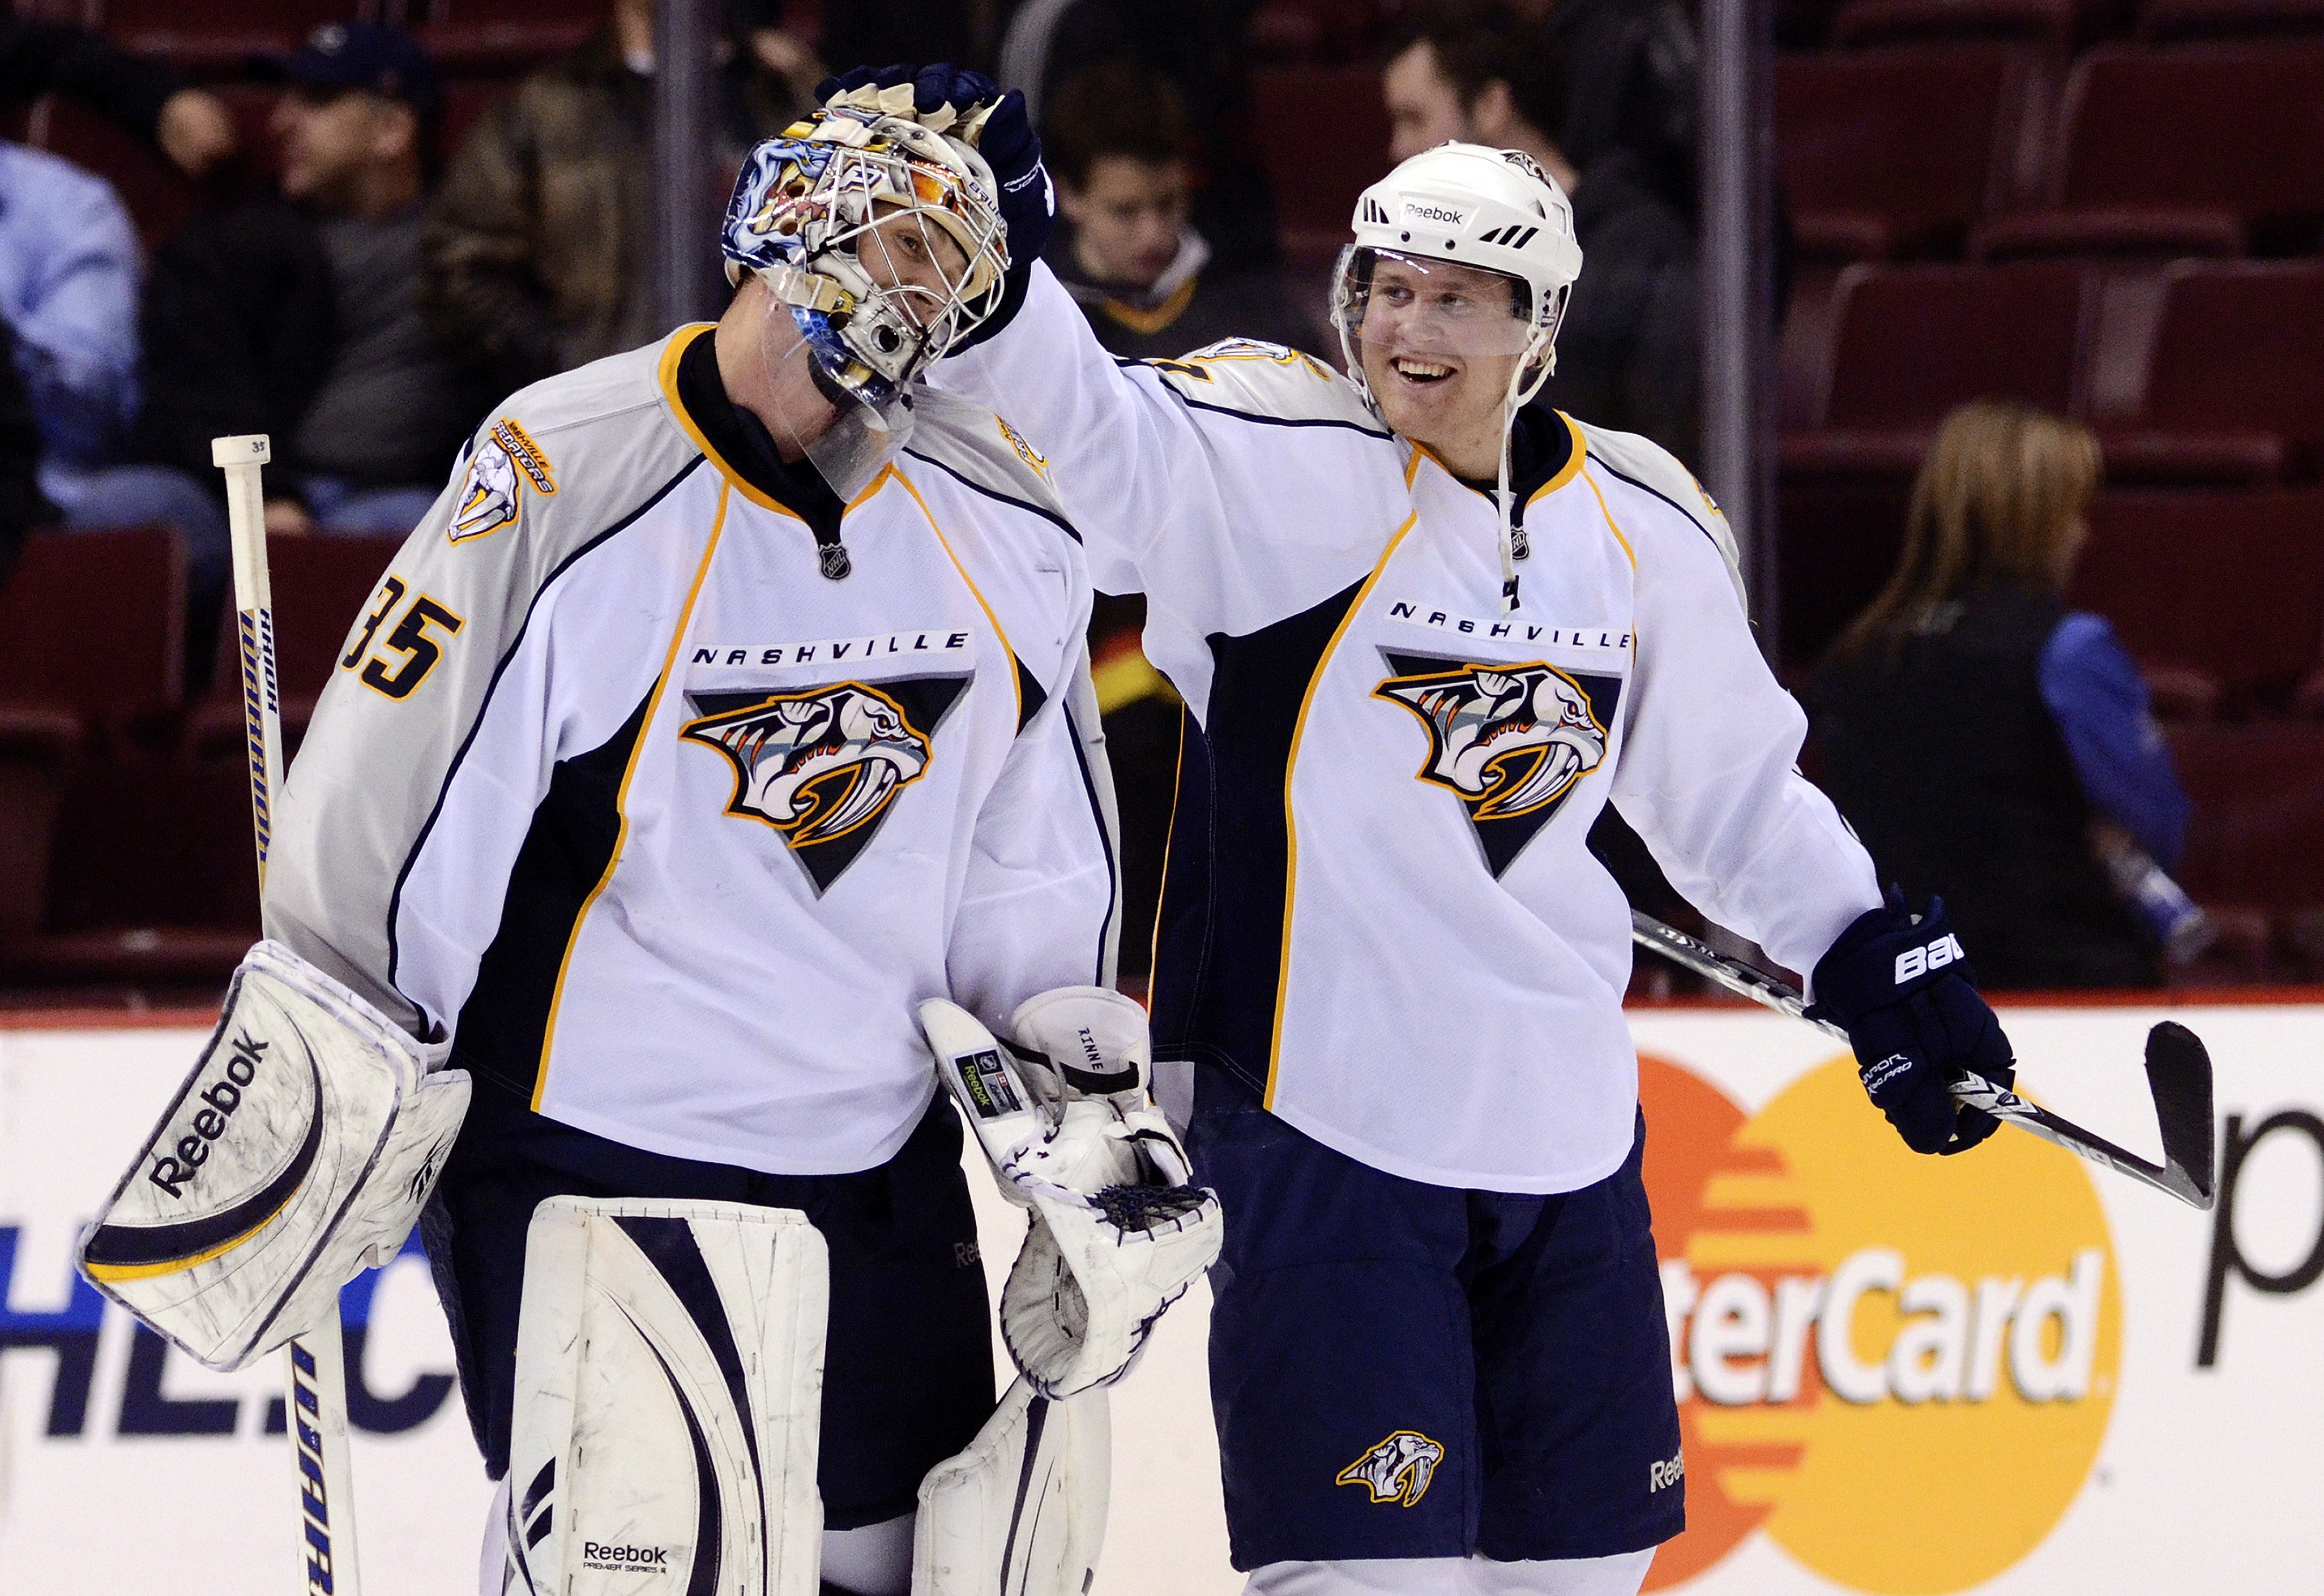 VANCOUVER, CANADA - MARCH 3: Goalie Pekka Rinne #35 of the Nashville Predators is congratulated by Patric Hornqvist #27 after defeating the Vancouver Canucks 3-0 in NHL action on March 03, 2011 at Rogers Arena in Vancouver, British Columbia, Canada.  (Pho